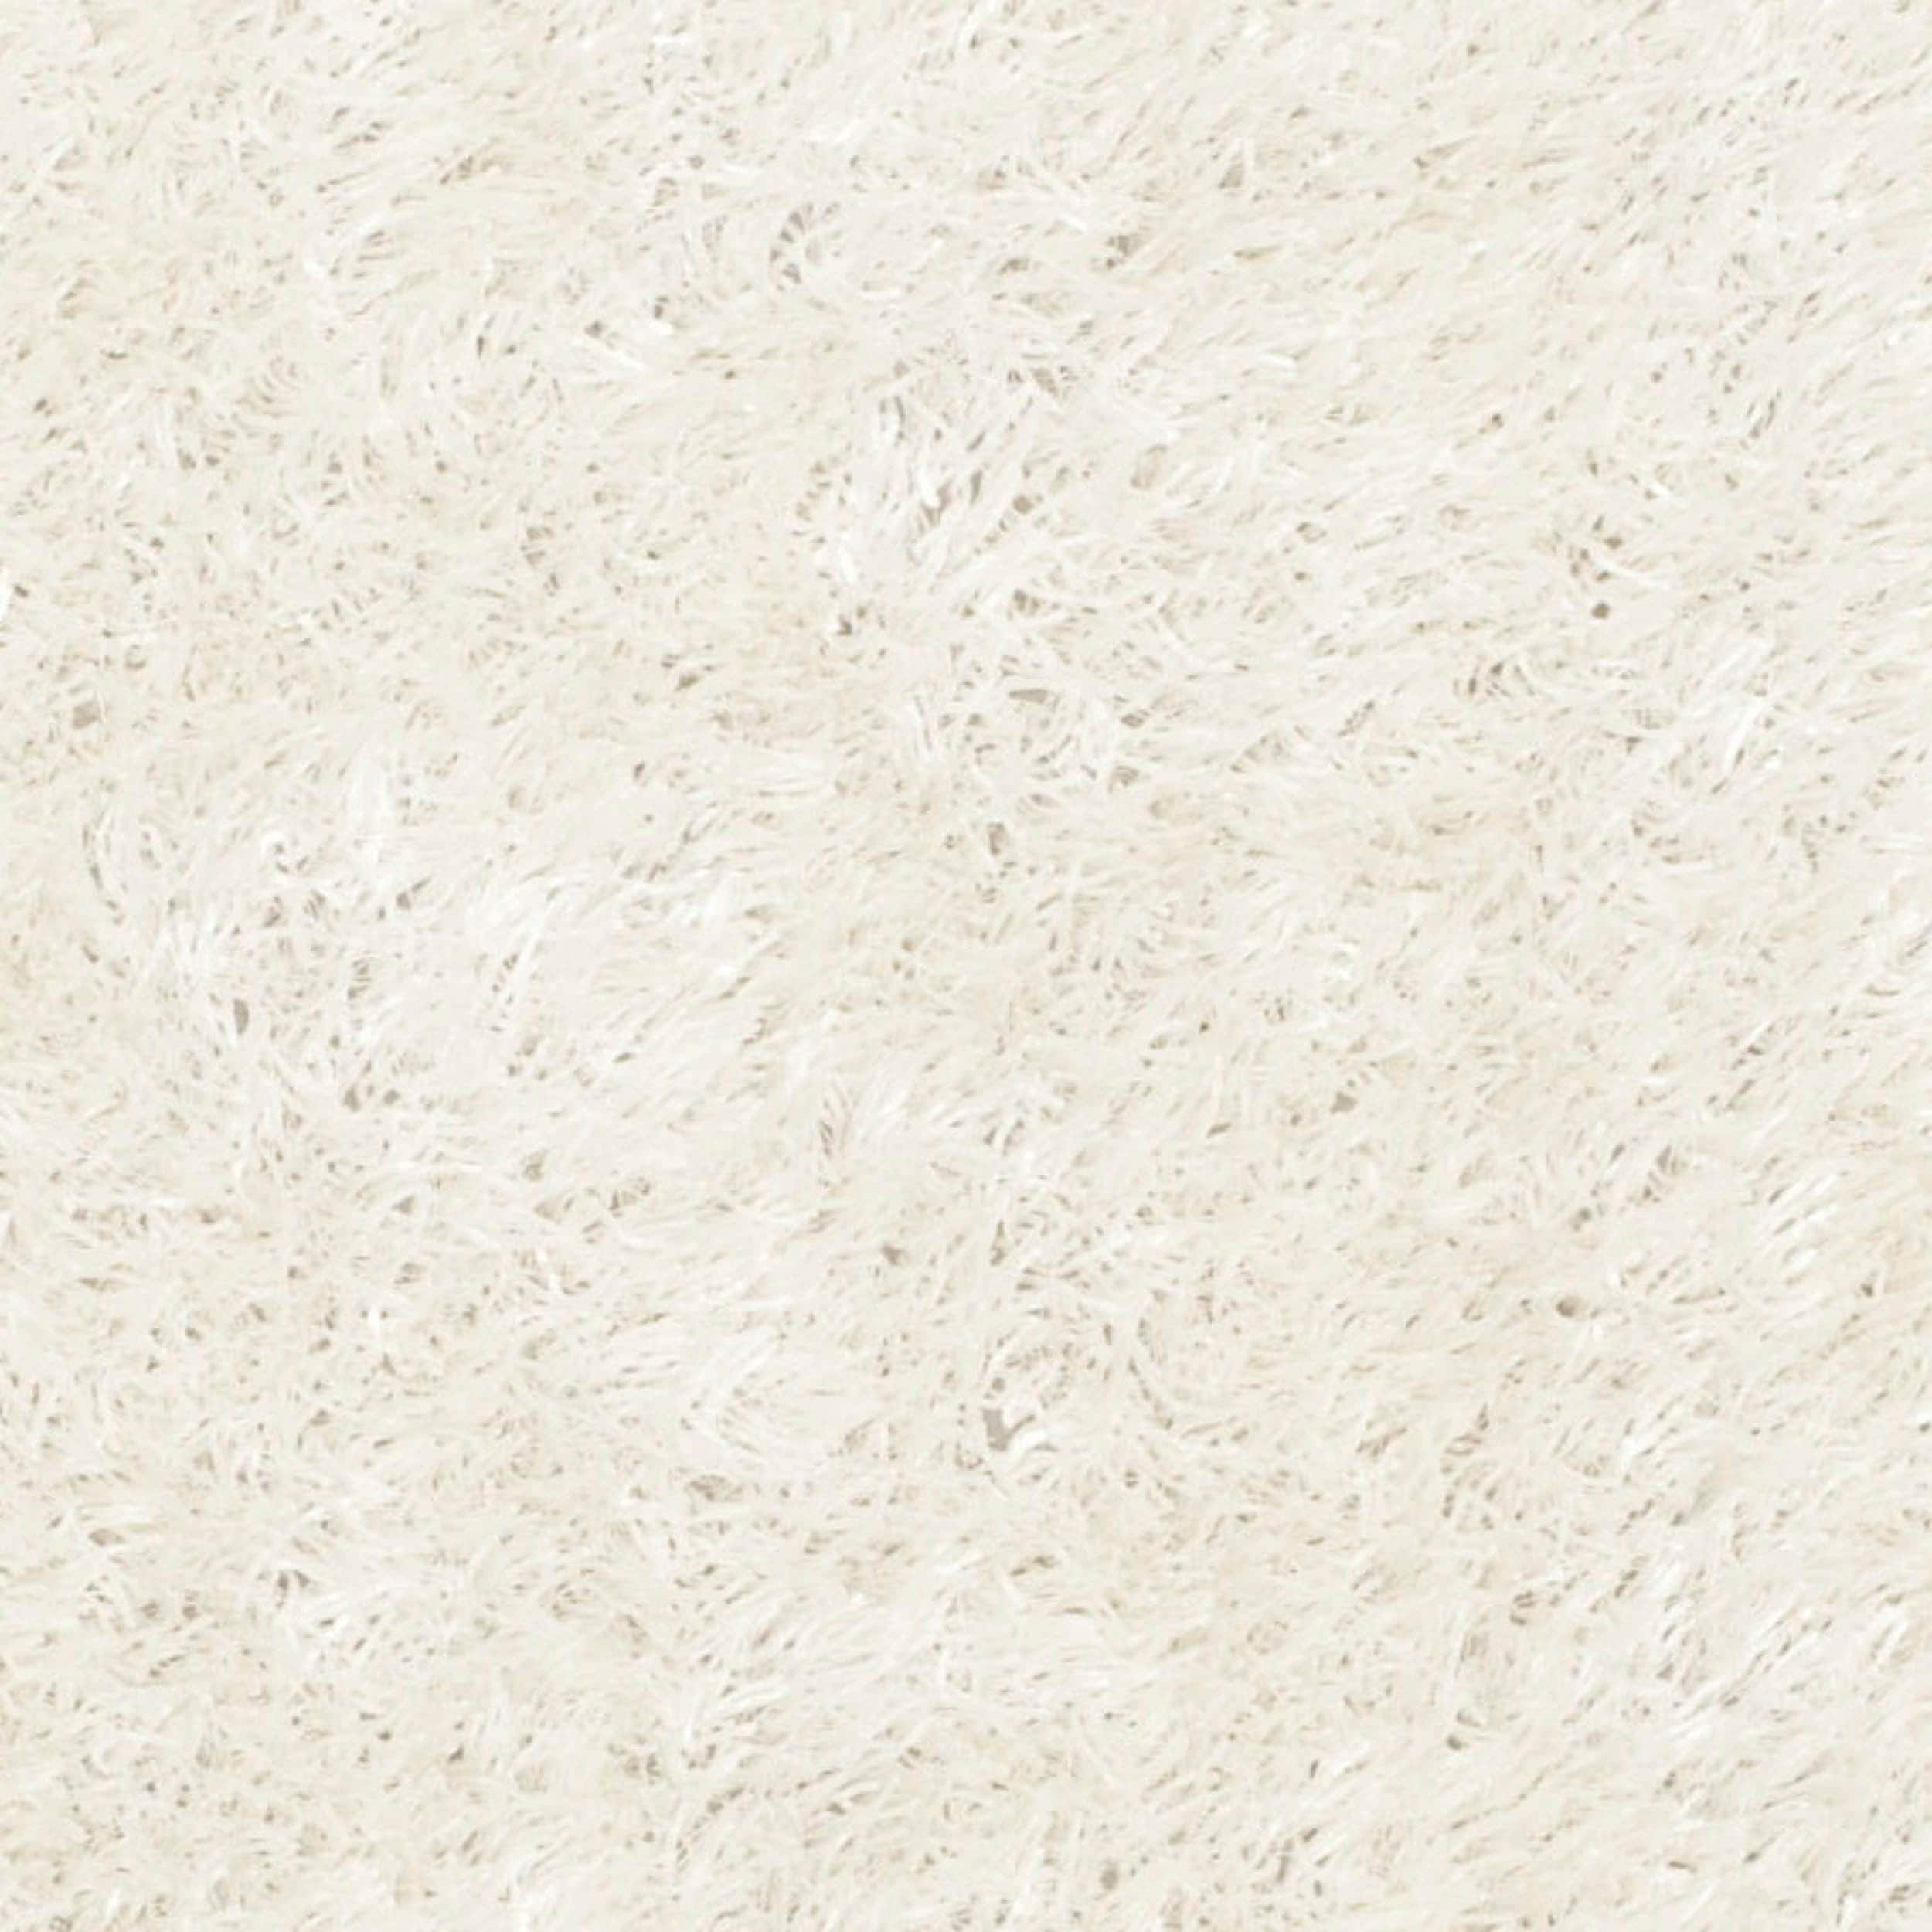 white rug texture.  White Shop Safavieh Handmade New Orleans Shag OffWhite Textured Polyester Area  Rug  5u0027 X 8u0027 On Sale Free Shipping Today Overstockcom 5953972 In White Texture V